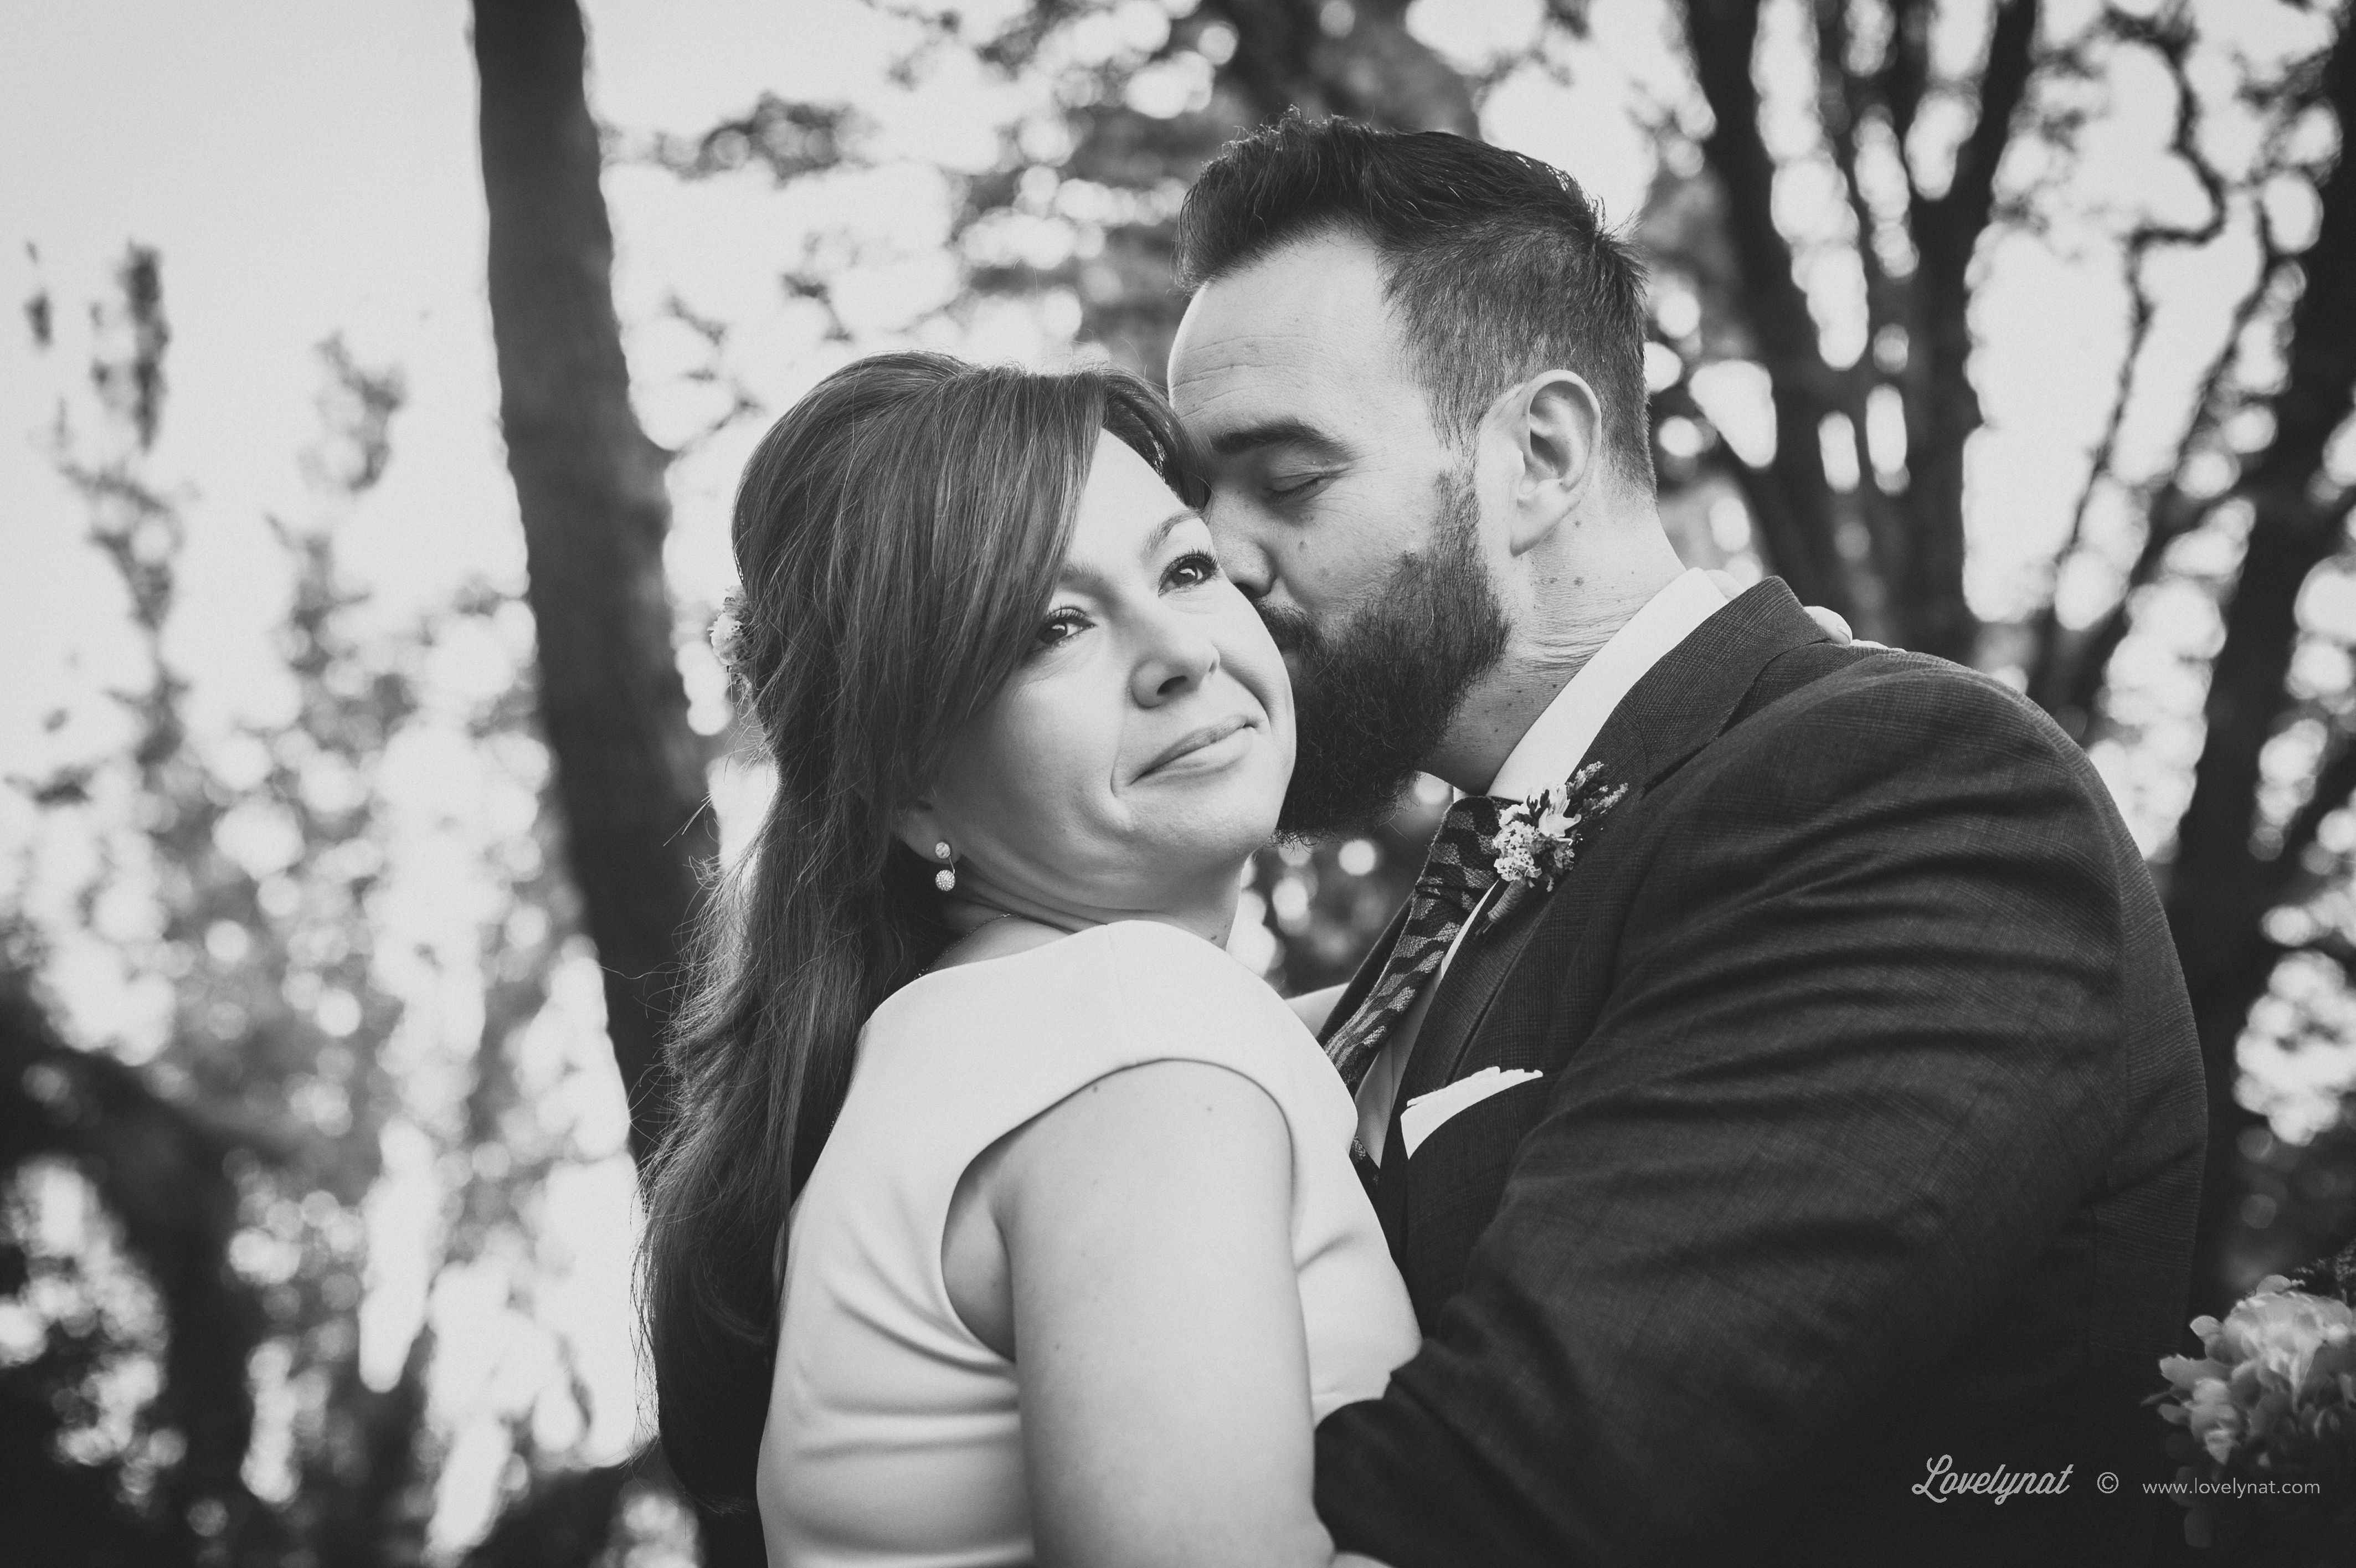 Antonio&Ester_Lovelynat-Photography_115_BW_result